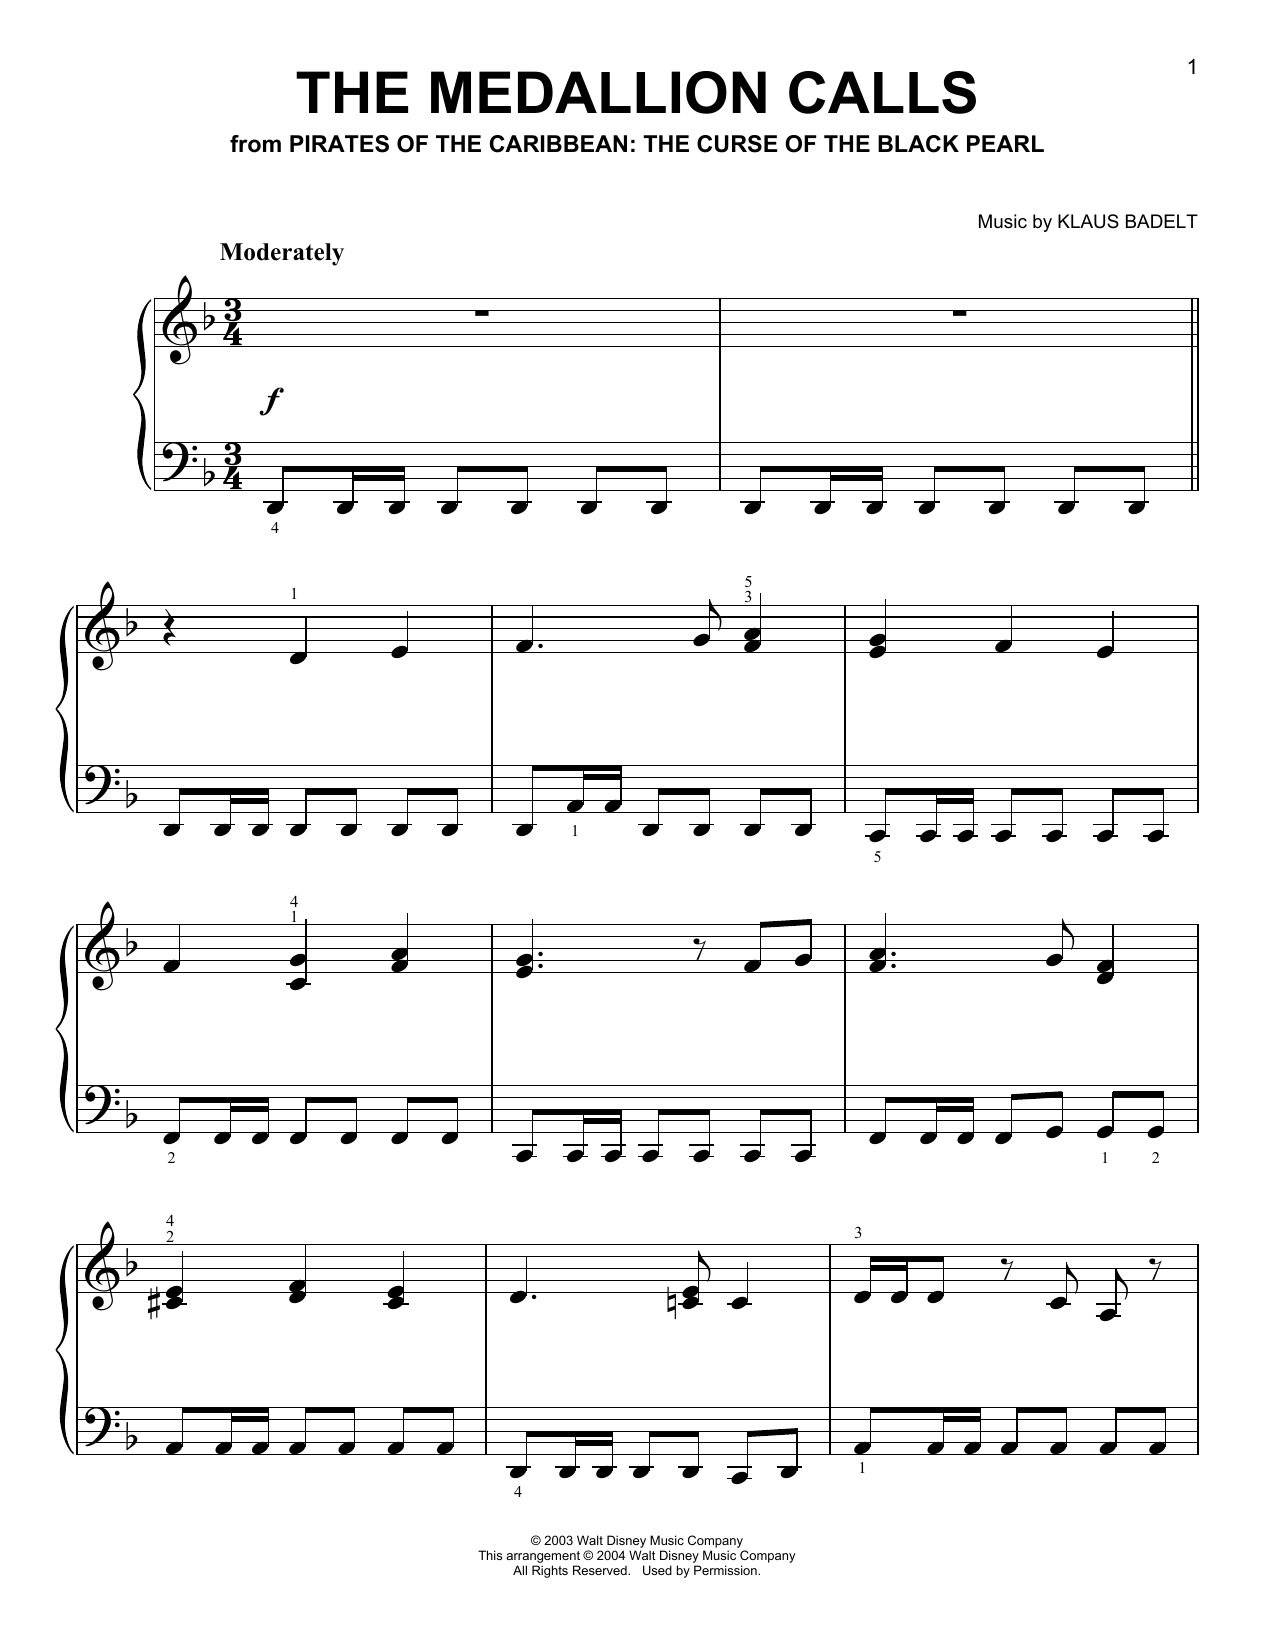 Hans Zimmer The Medallion Calls sheet music notes and chords. Download Printable PDF.